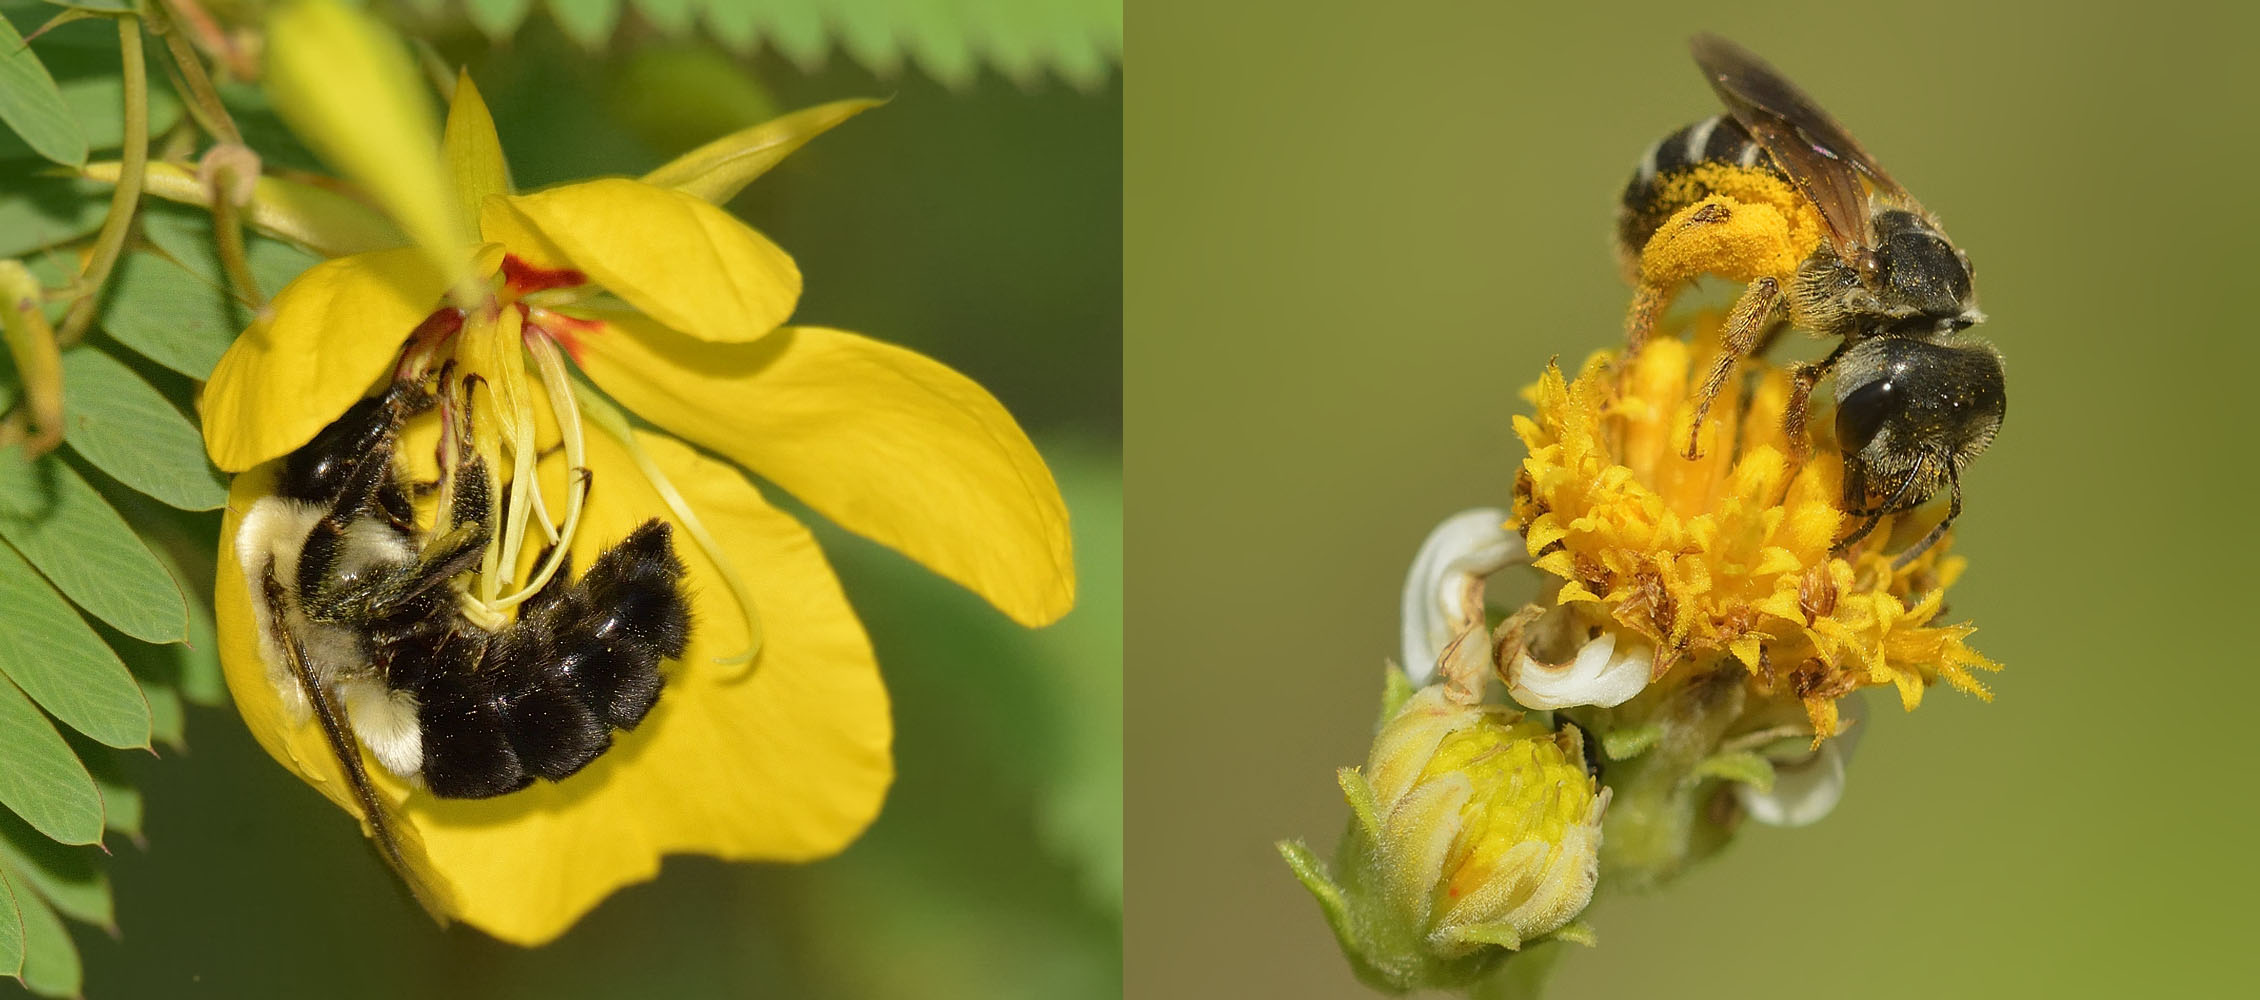 Pollinator Research